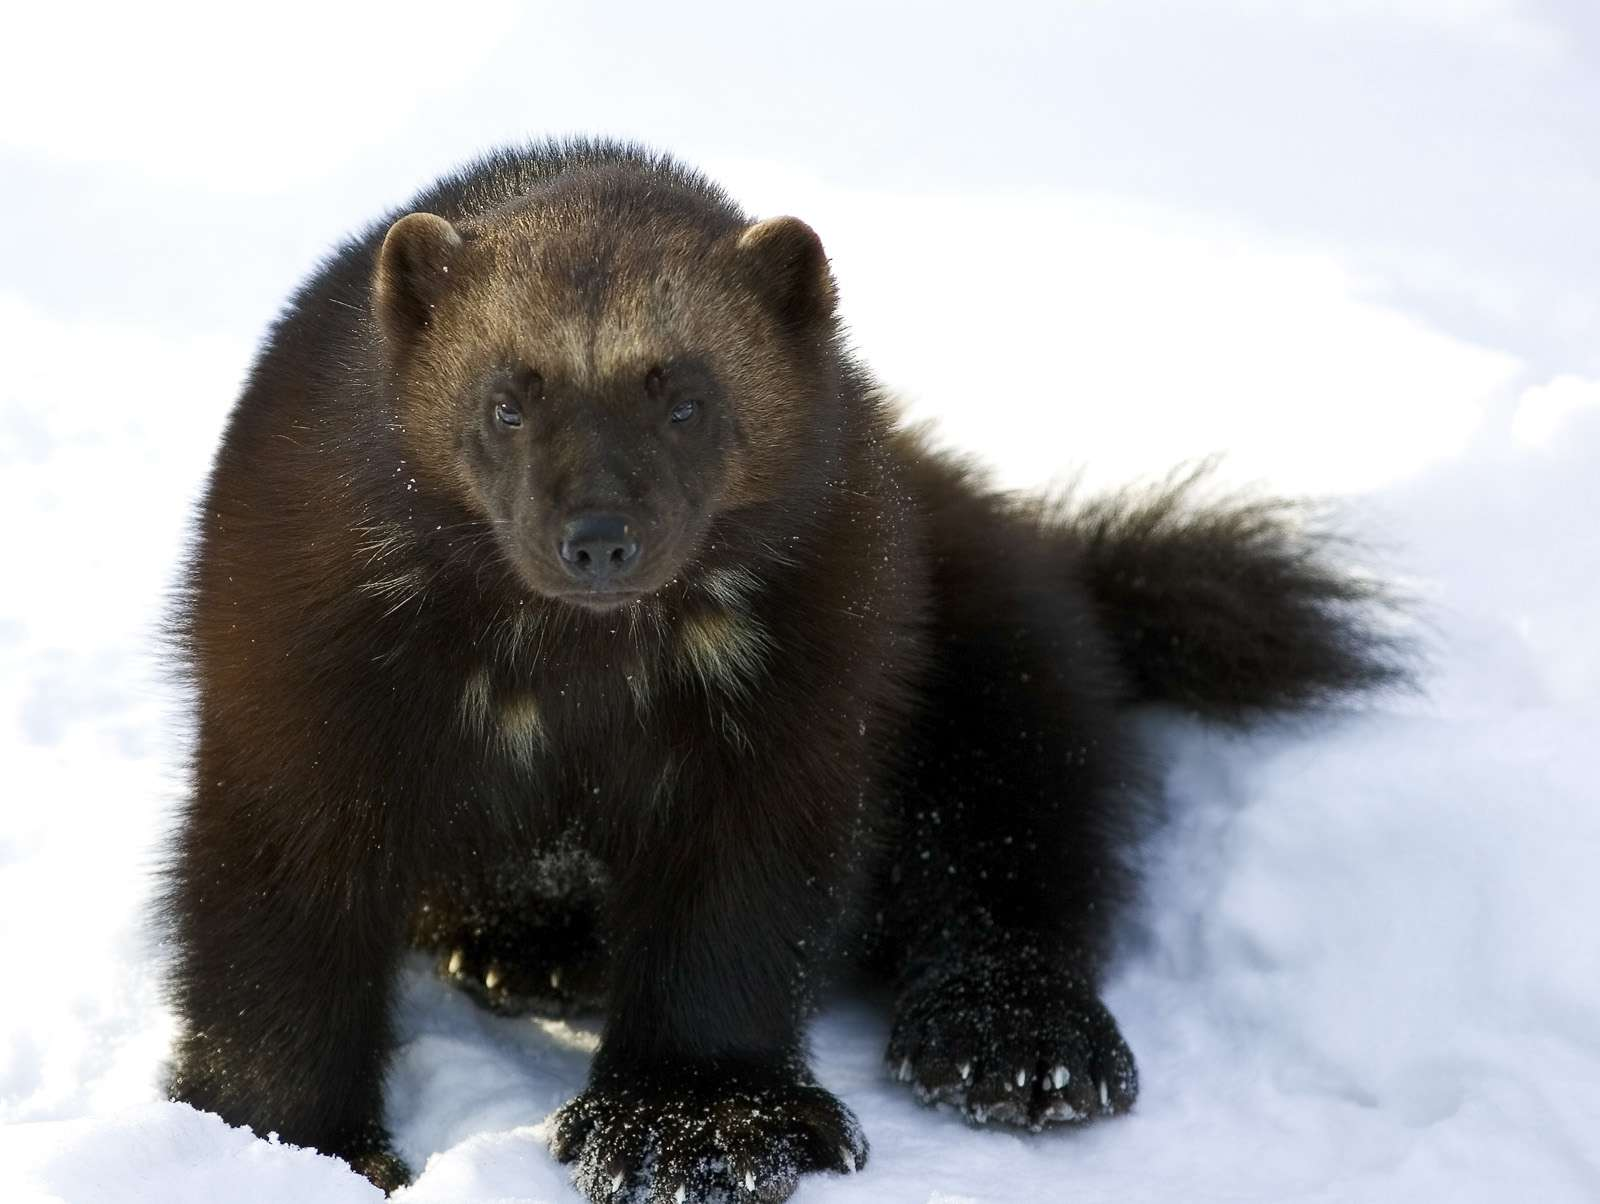 A wolverine in the snow